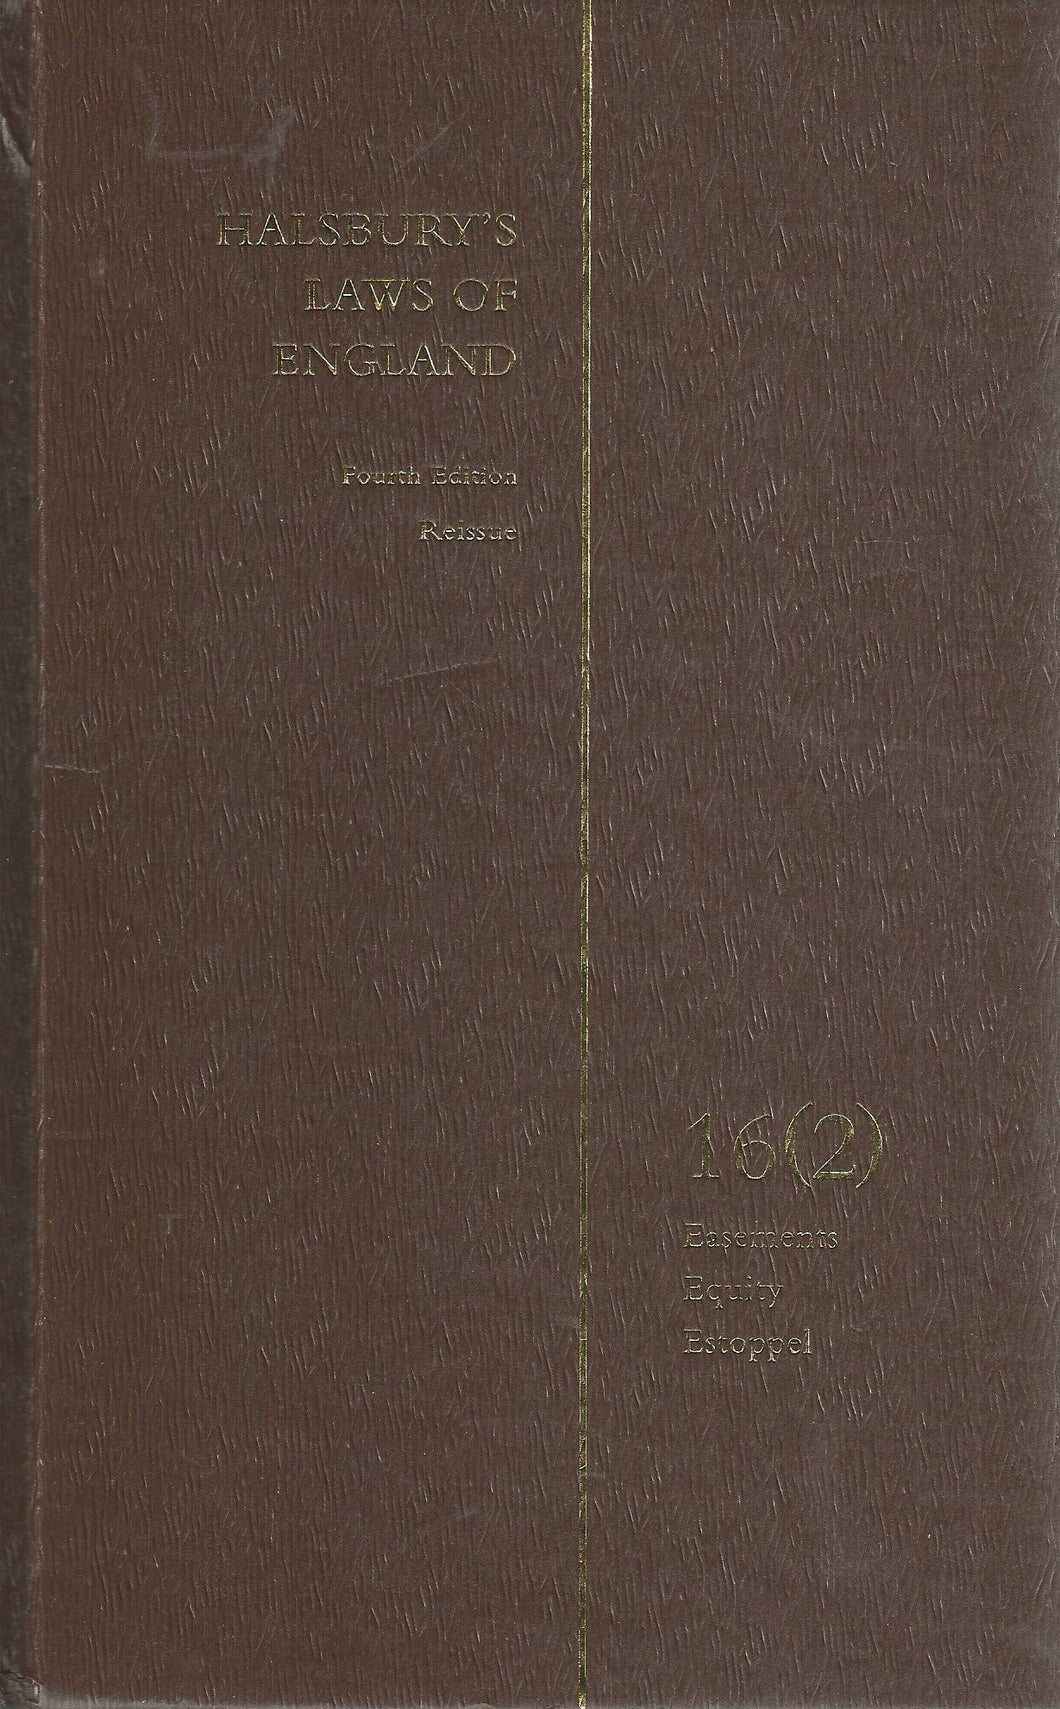 Halsbury's Laws of England - Fourth Edition Reissue 16(2): Easements, Equity, Estoppel